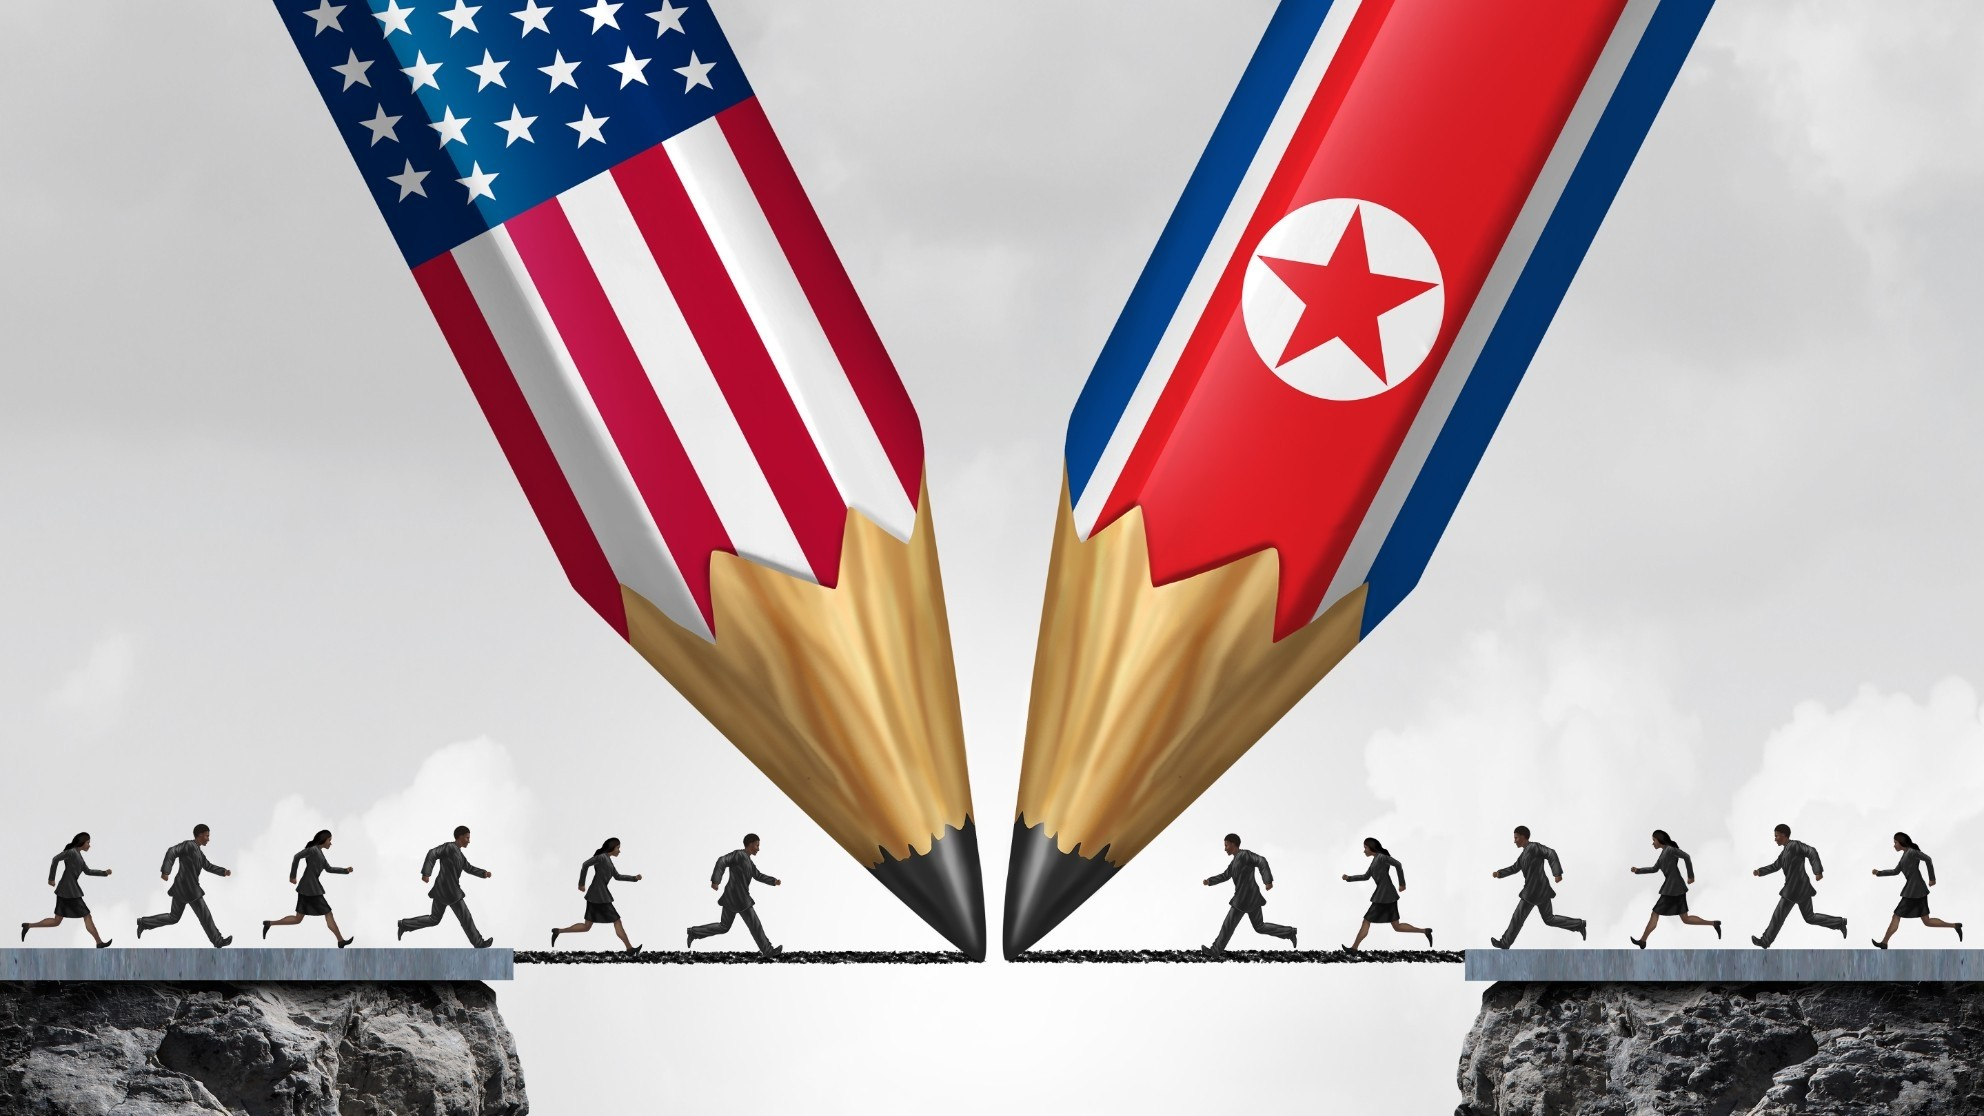 U.S. and North Korean diplomacy depicted by pencils and people running off cliffs to meet in the middle, photo by wildpixel/Getty Images